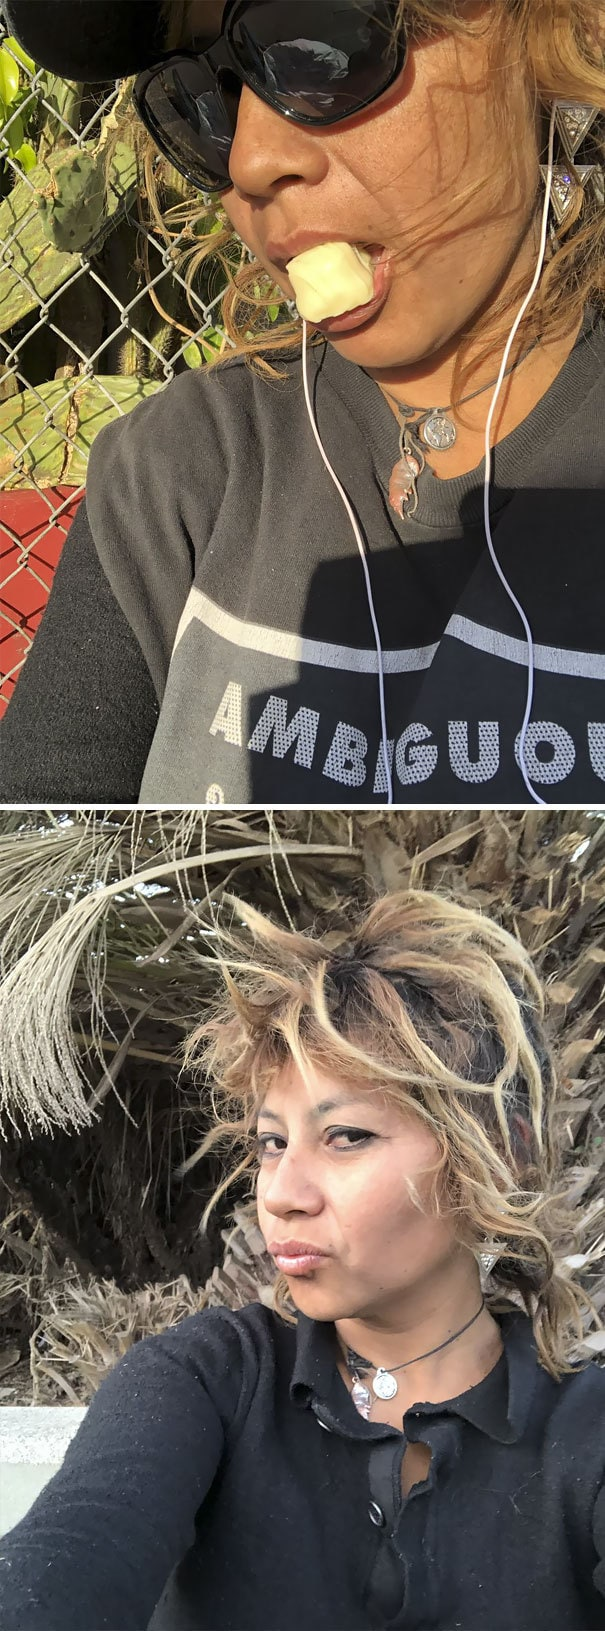 23 Strange Photos That People Found In Their Phones